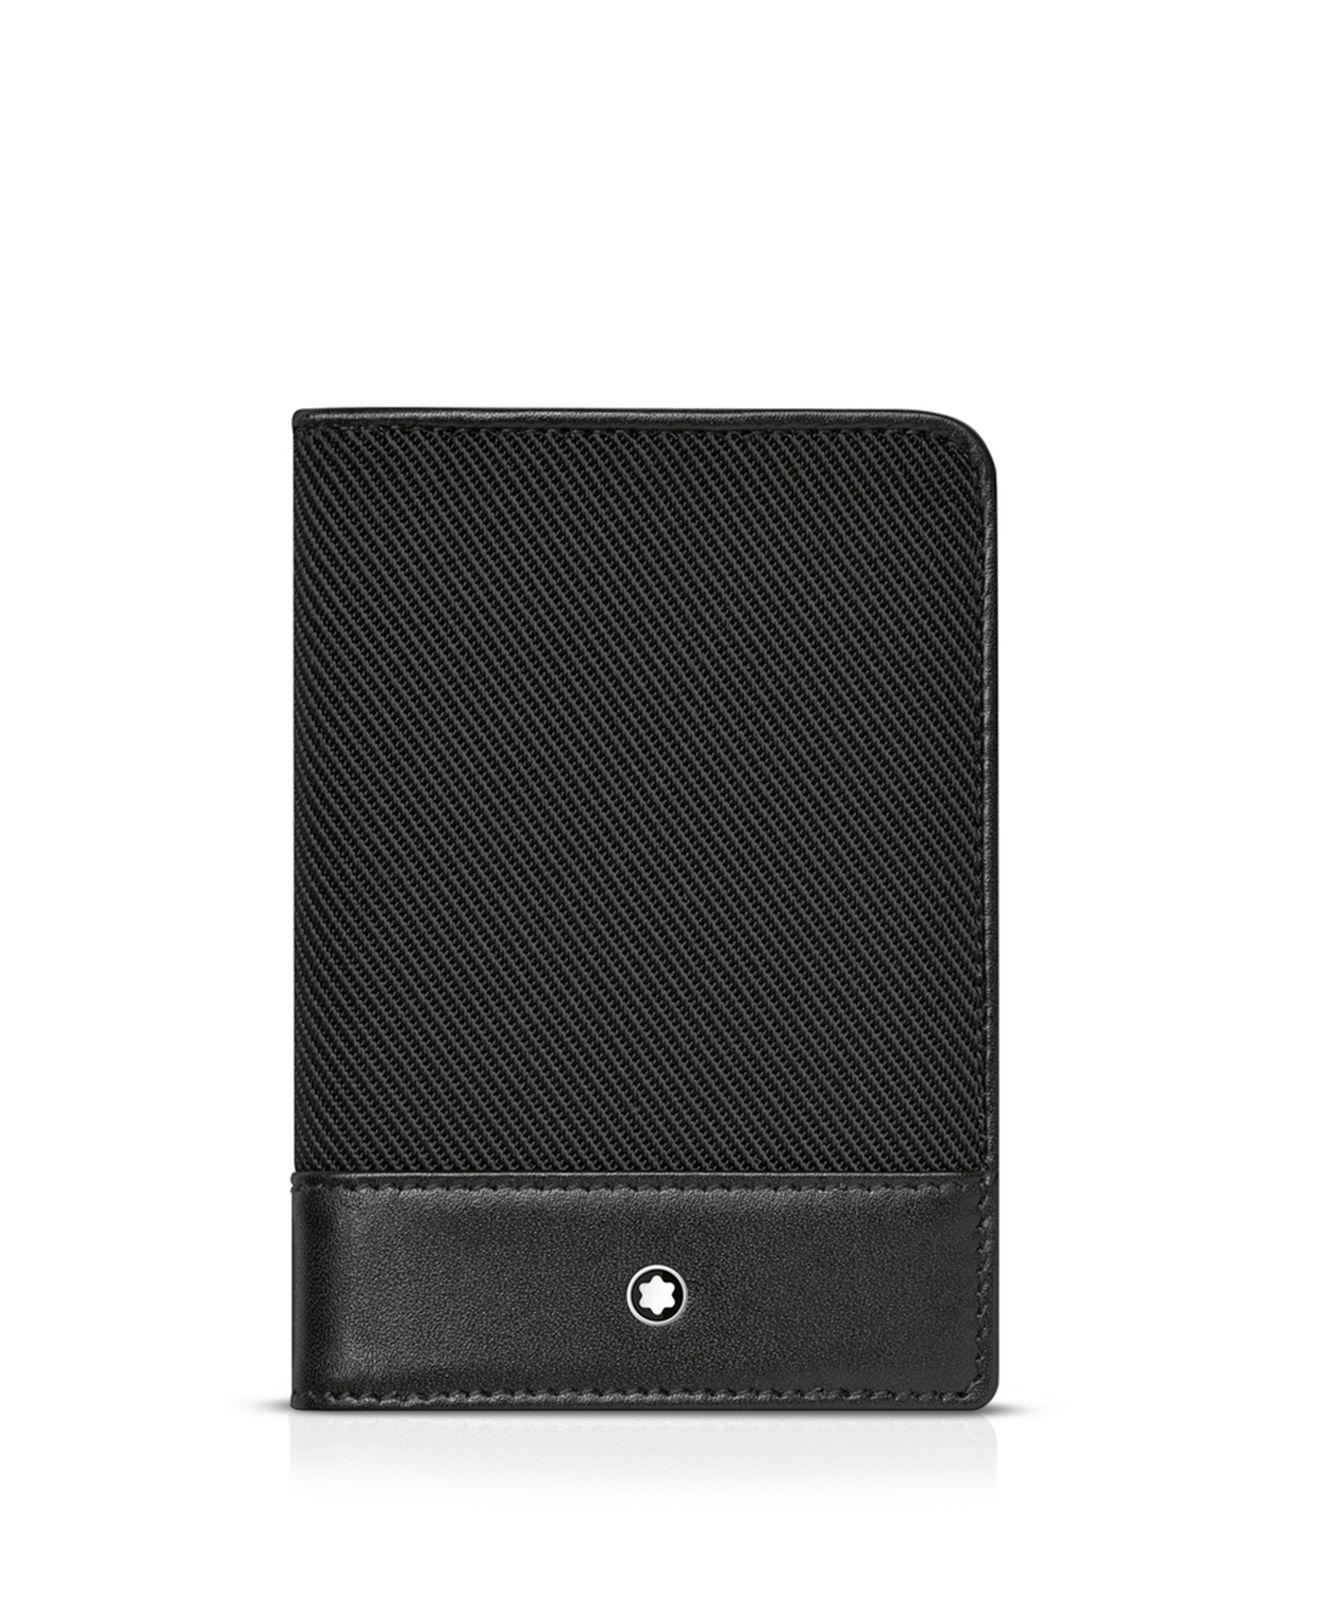 Montblanc Nightflight Business Card Holder in Black for Men